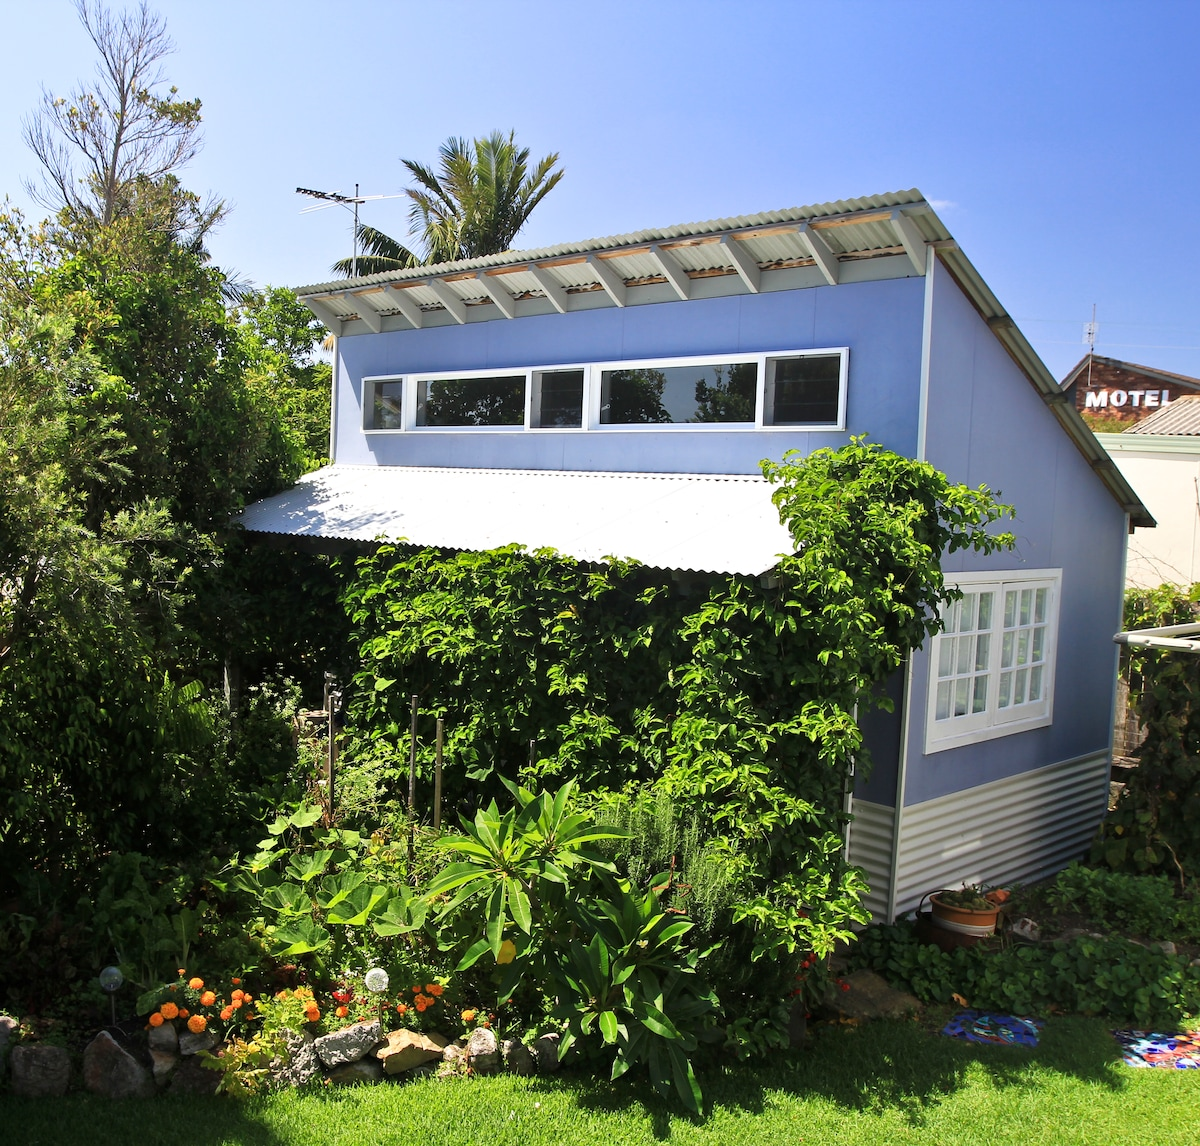 Your own get-away in a lush garden